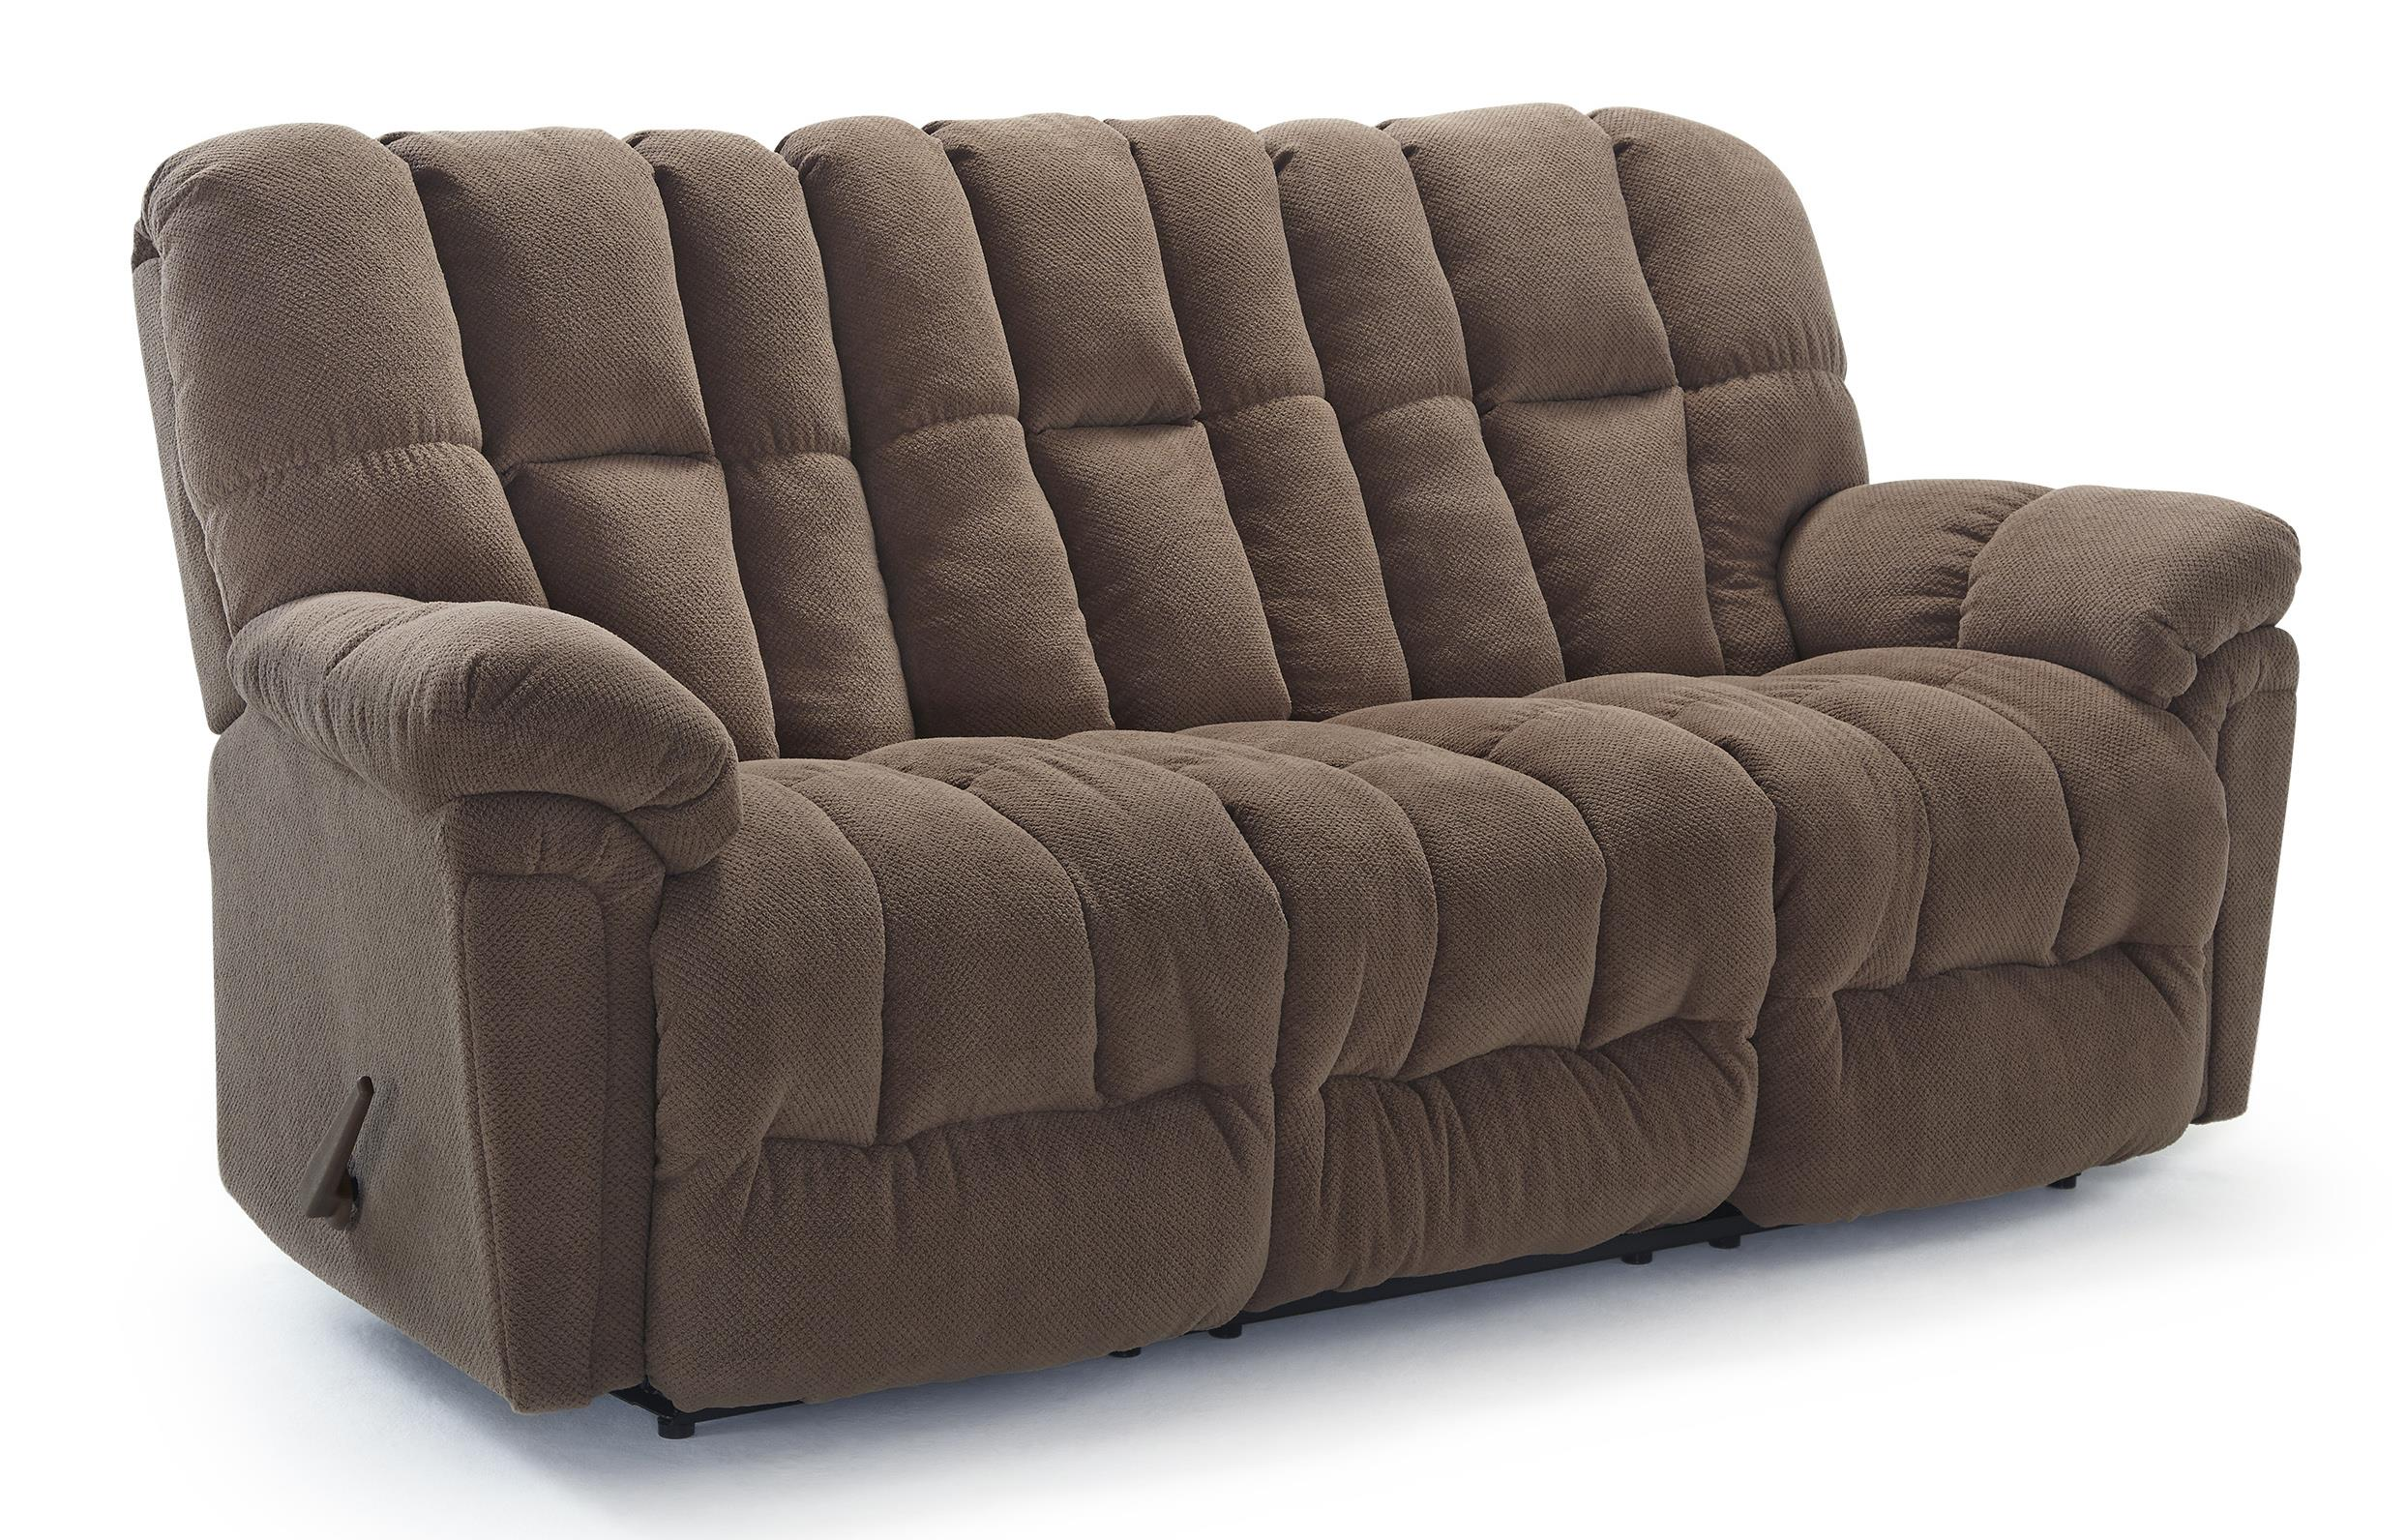 chaise recliner sofa covers online bangalore casual plush power reclining with full coverage